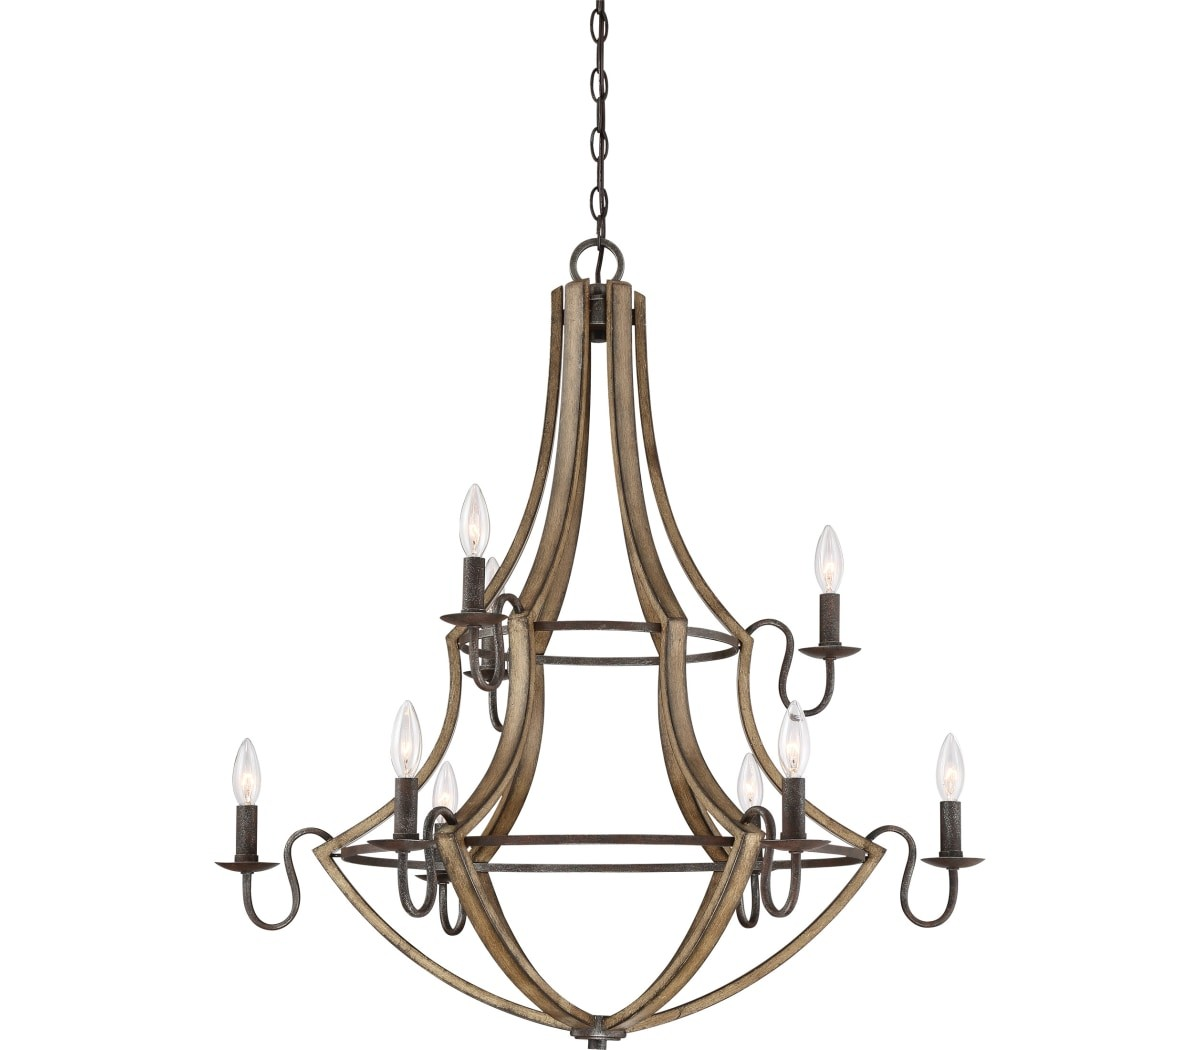 quoizel lighting shire quoizel-shire-chandelier-1